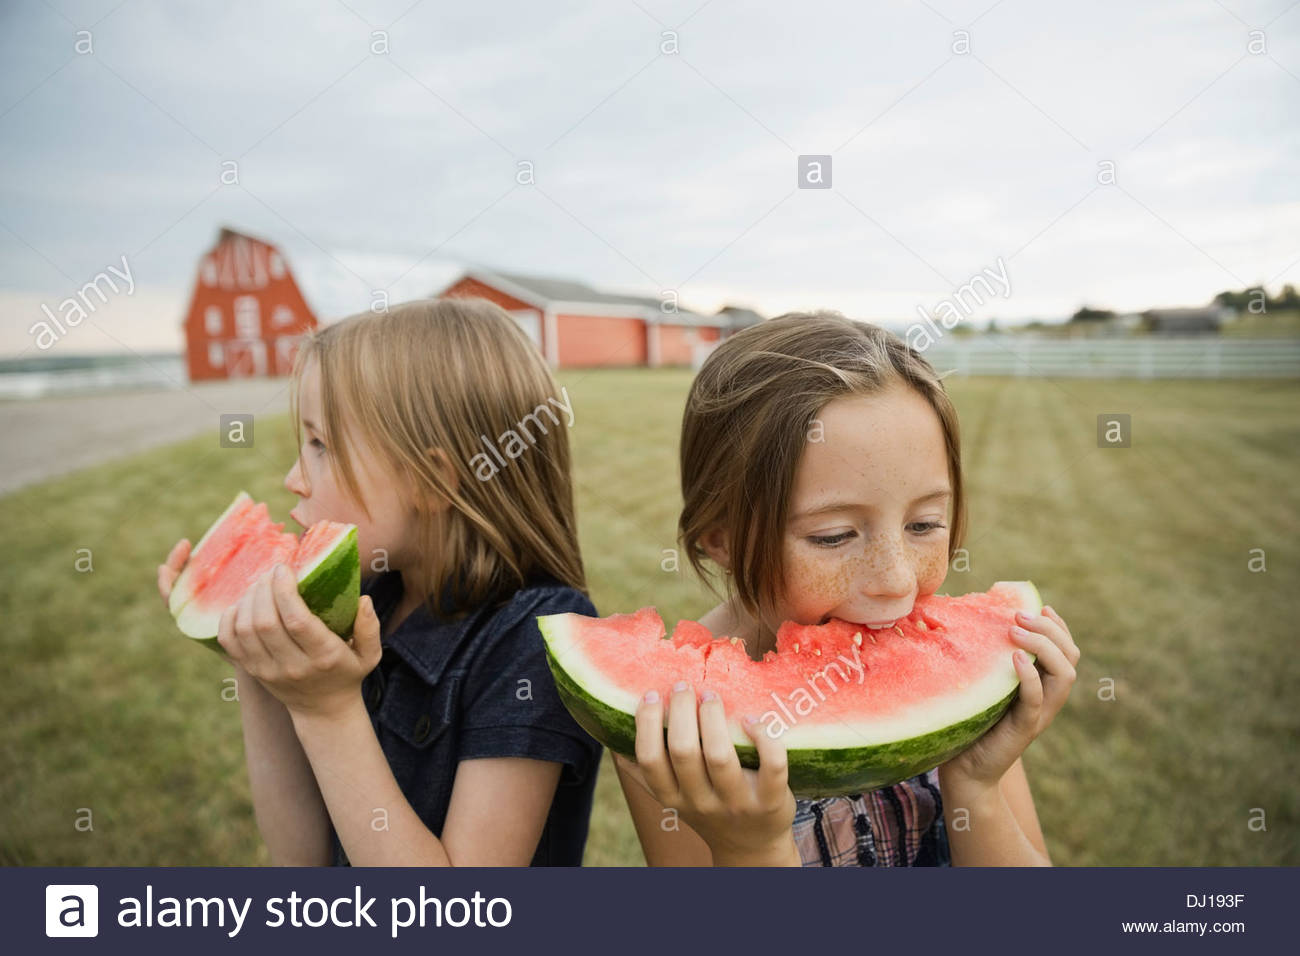 Girls eating watermelon outdoors - Stock Image